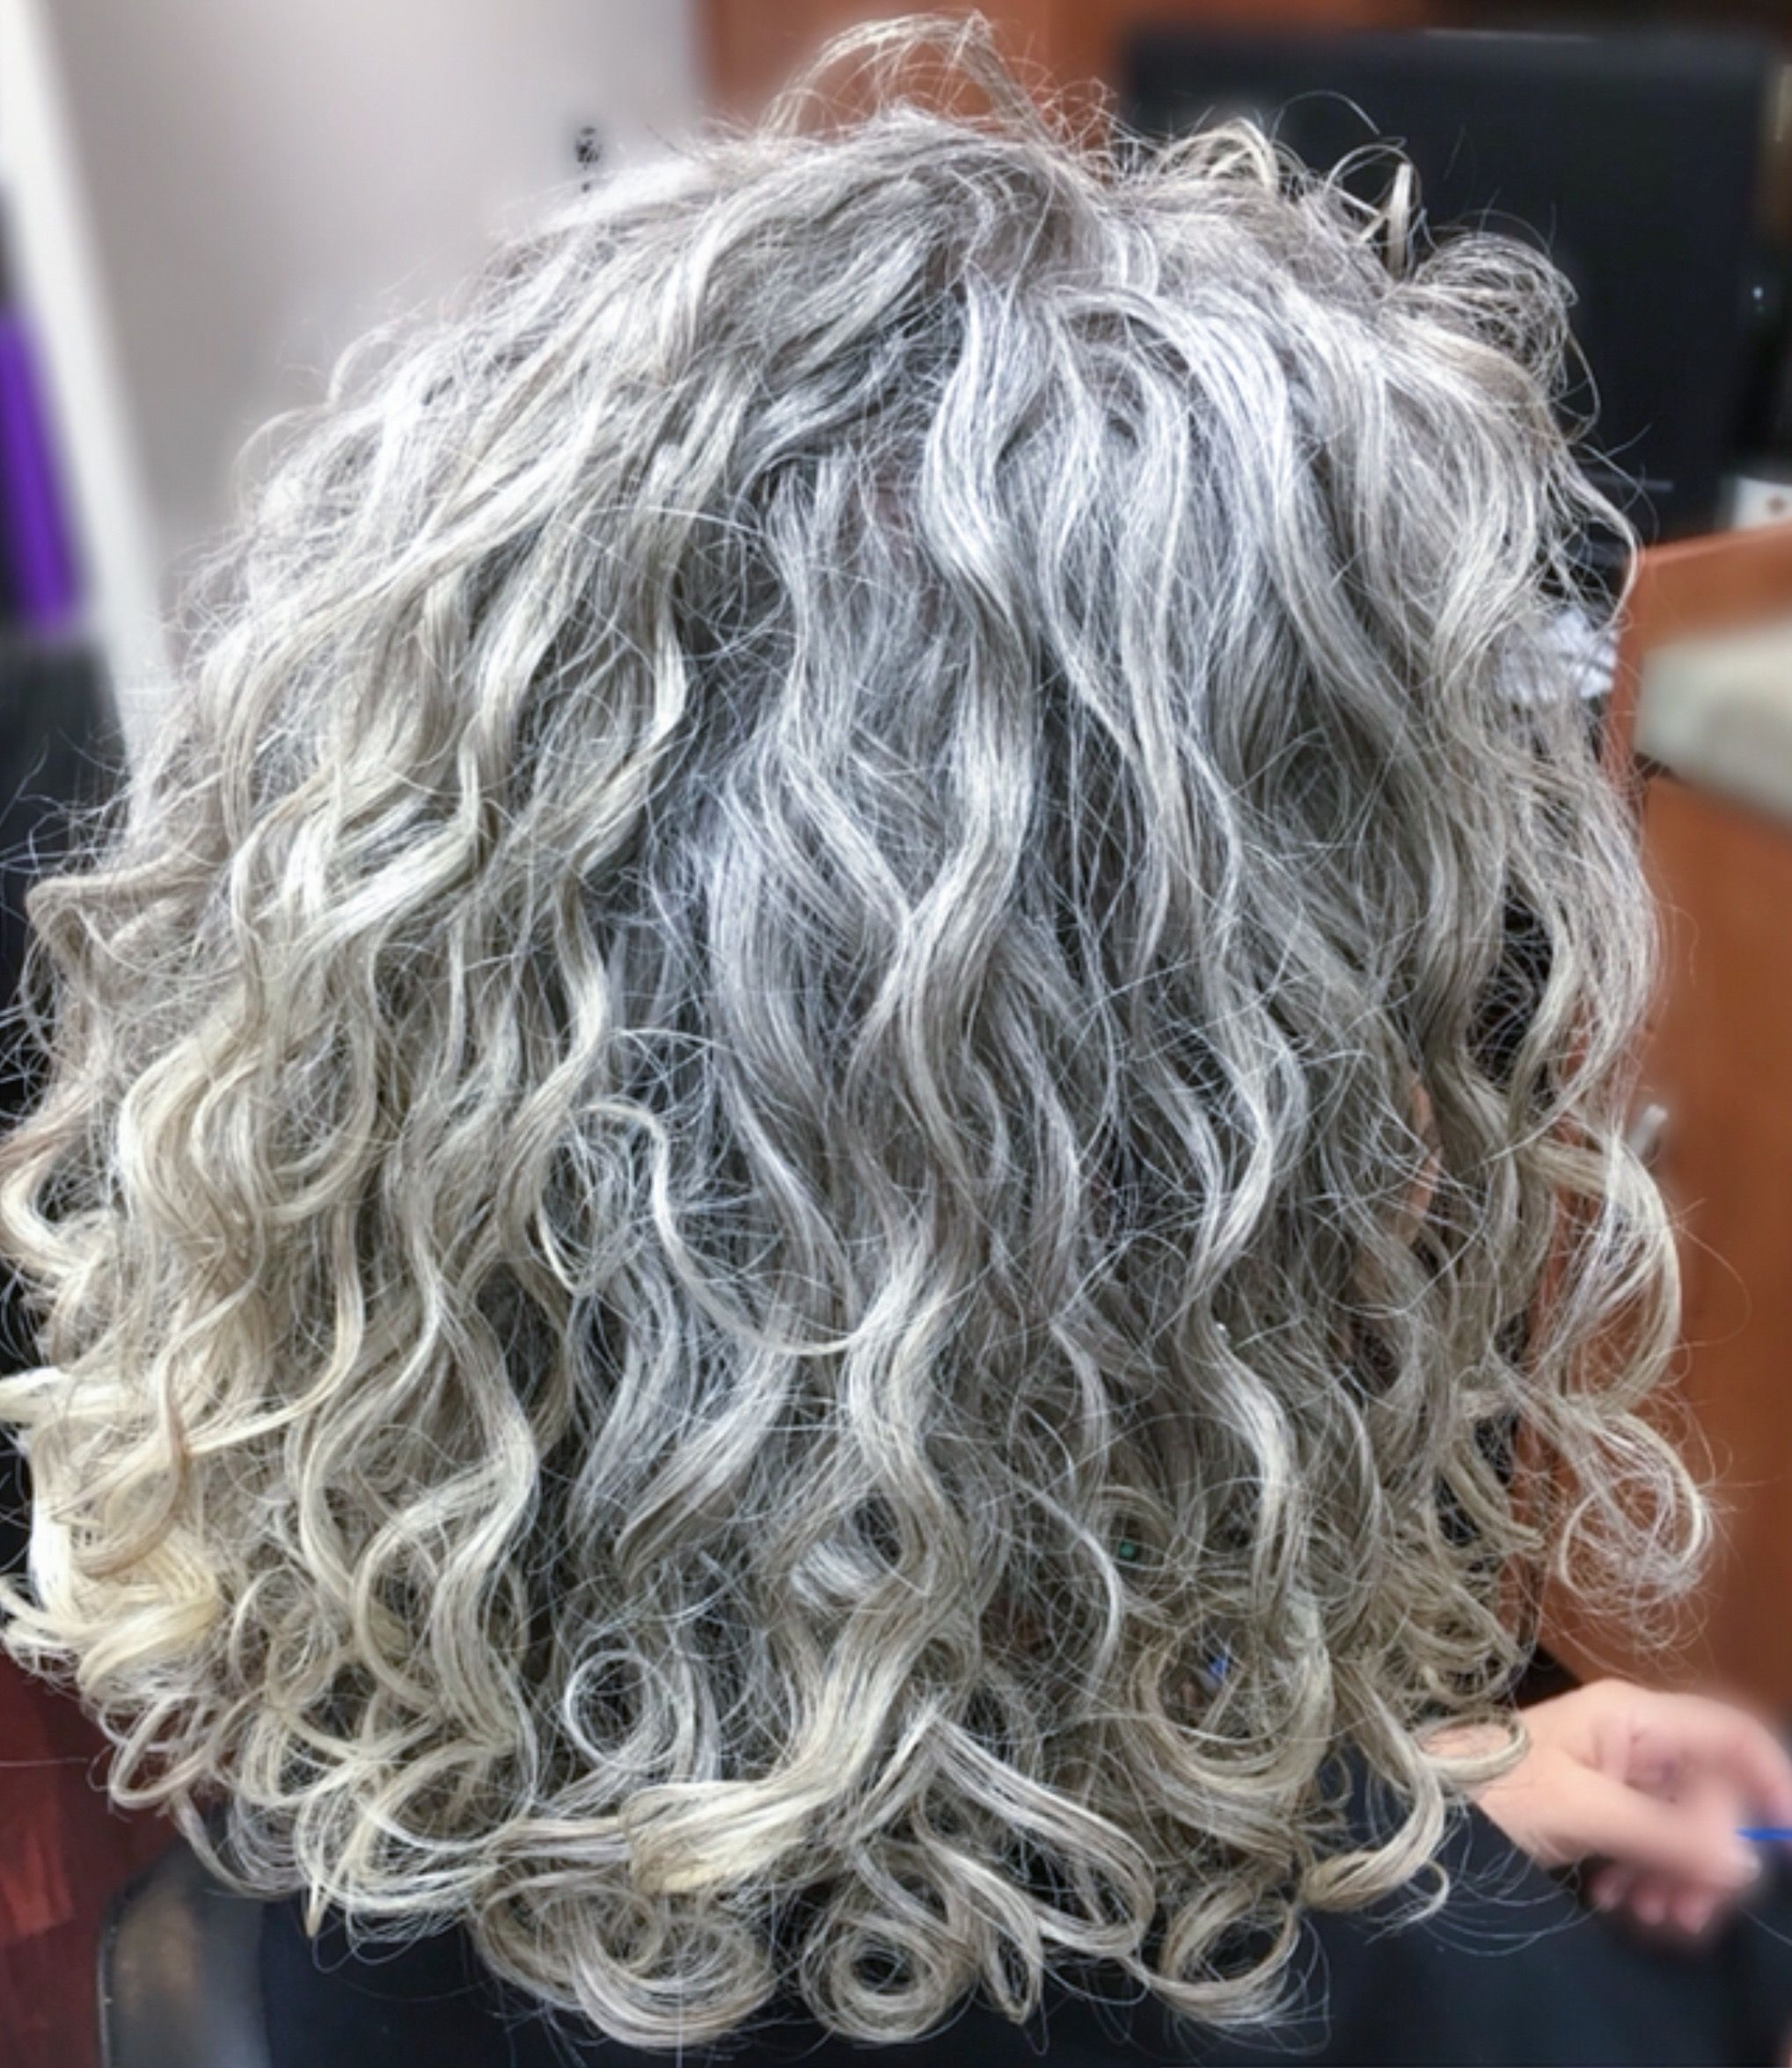 Thick Wavy Curly Natural Grey Hair I Love The Colour And Texture Of Her